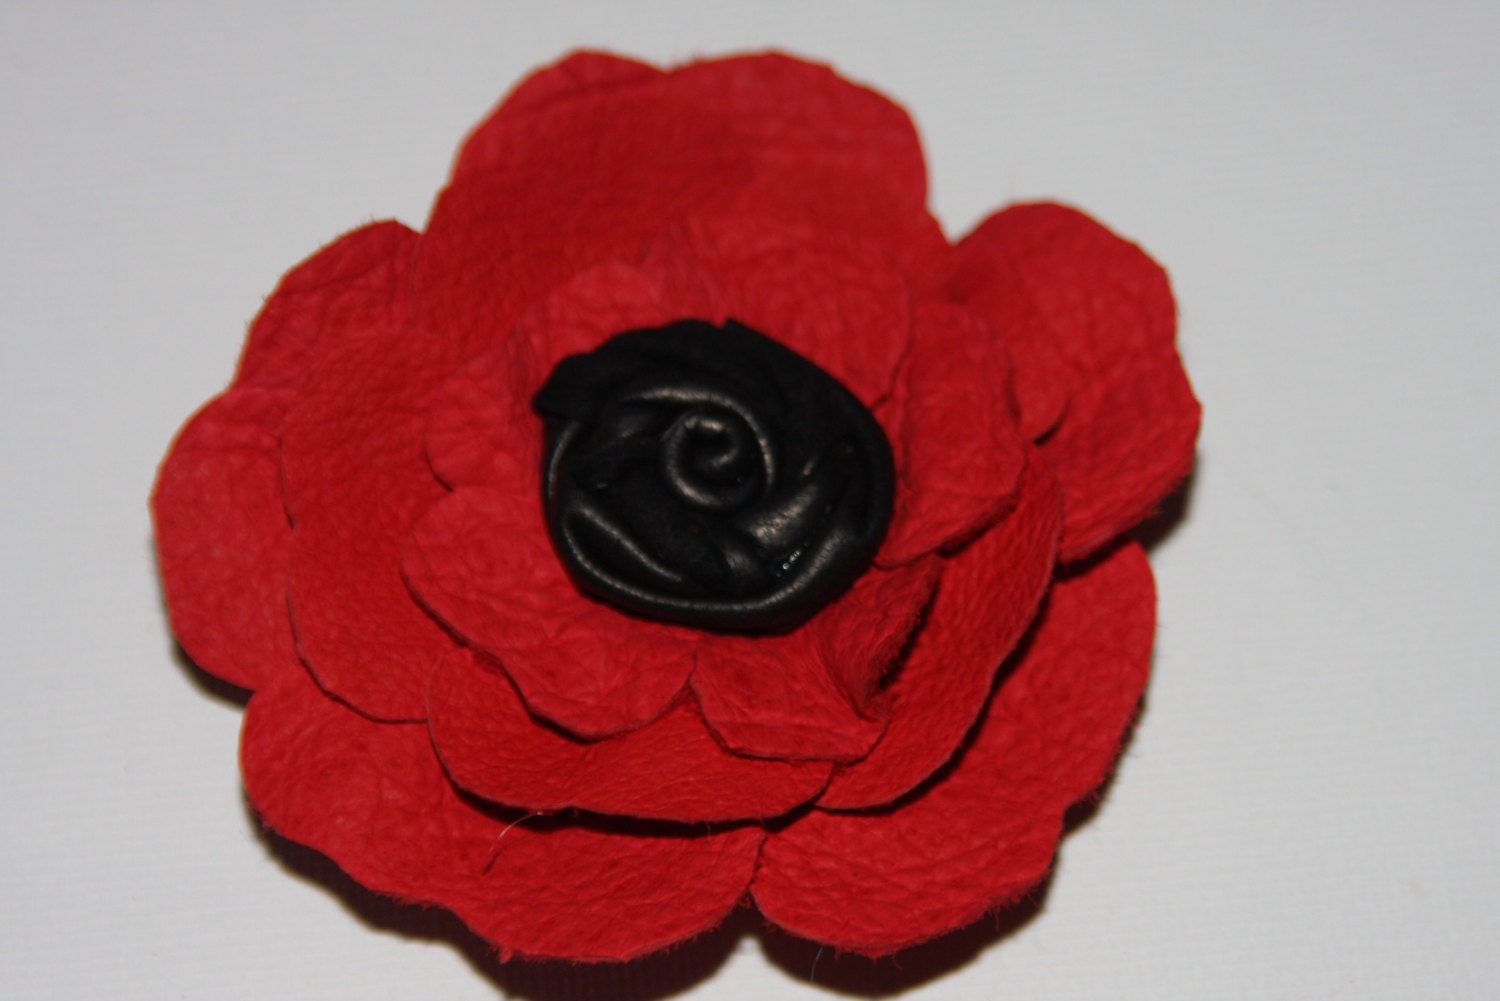 Red flower red leather flower corsage pin or hair clip red  black flower shoe clips order 2 red leather flower brooch red rose Ruby62